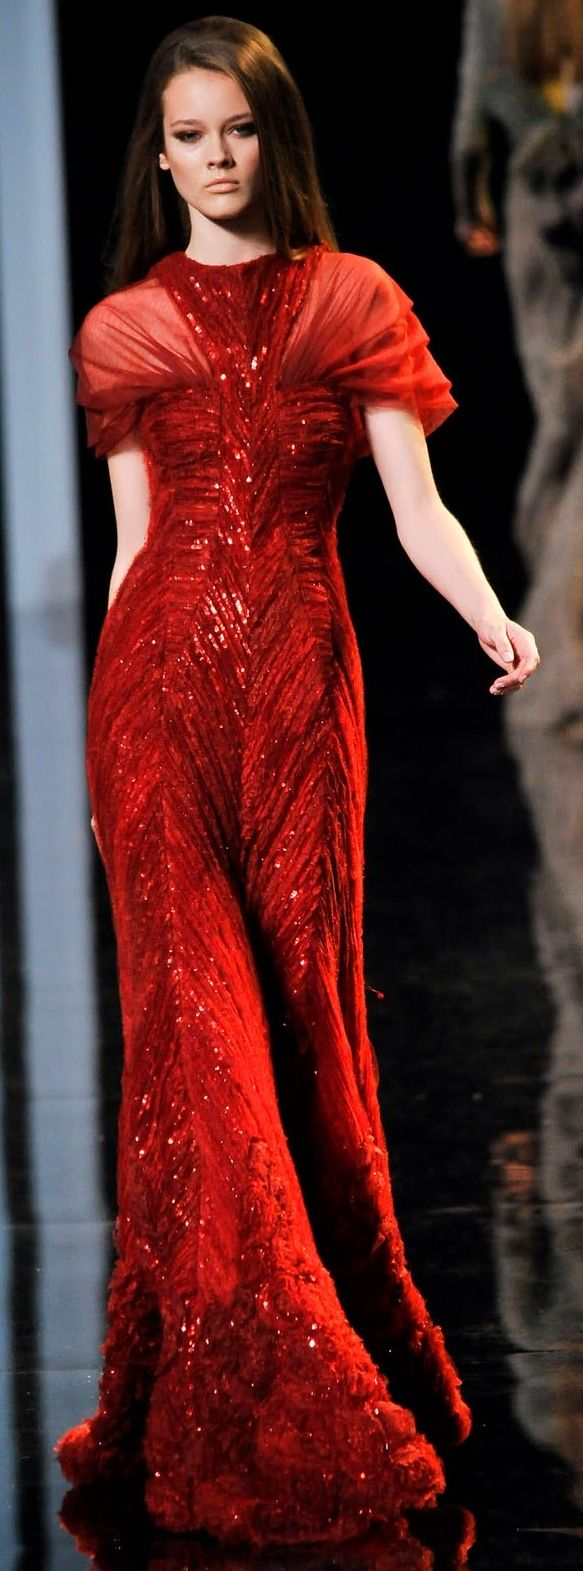 Elie Saab Haute Couture [Another awesome space princess outfit}